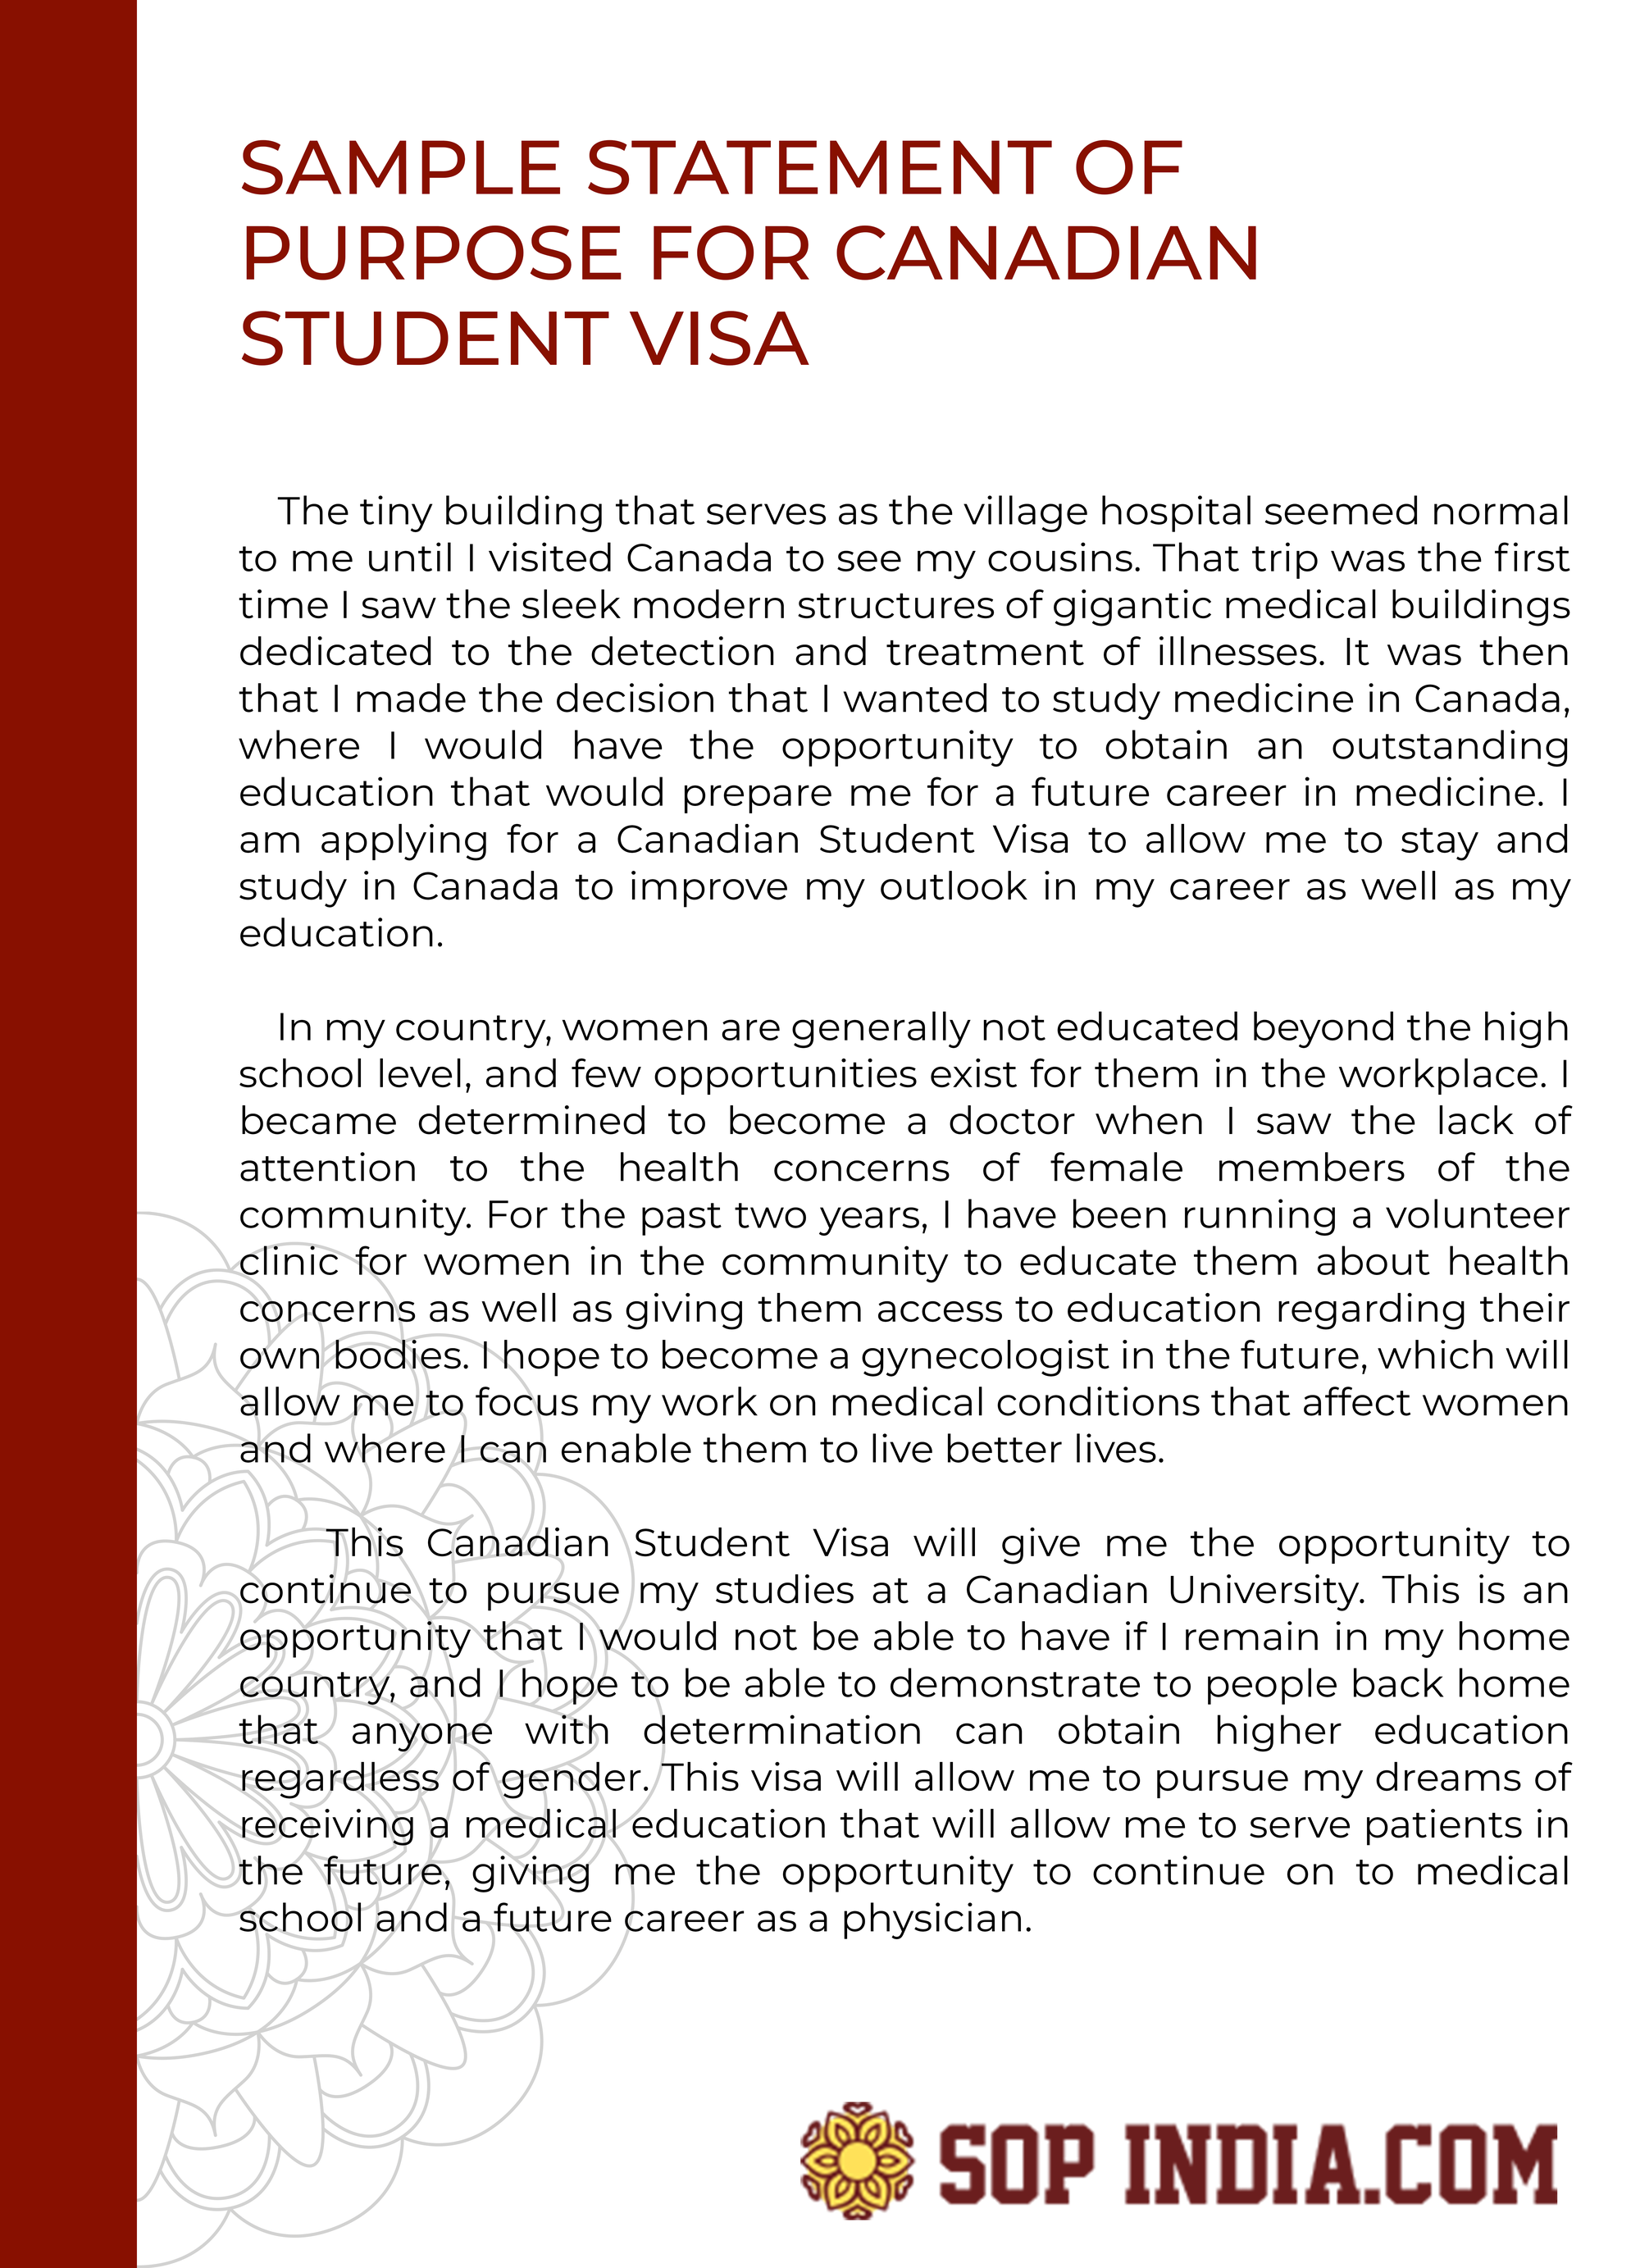 Sample statement of purpose for Canadian Visa that can